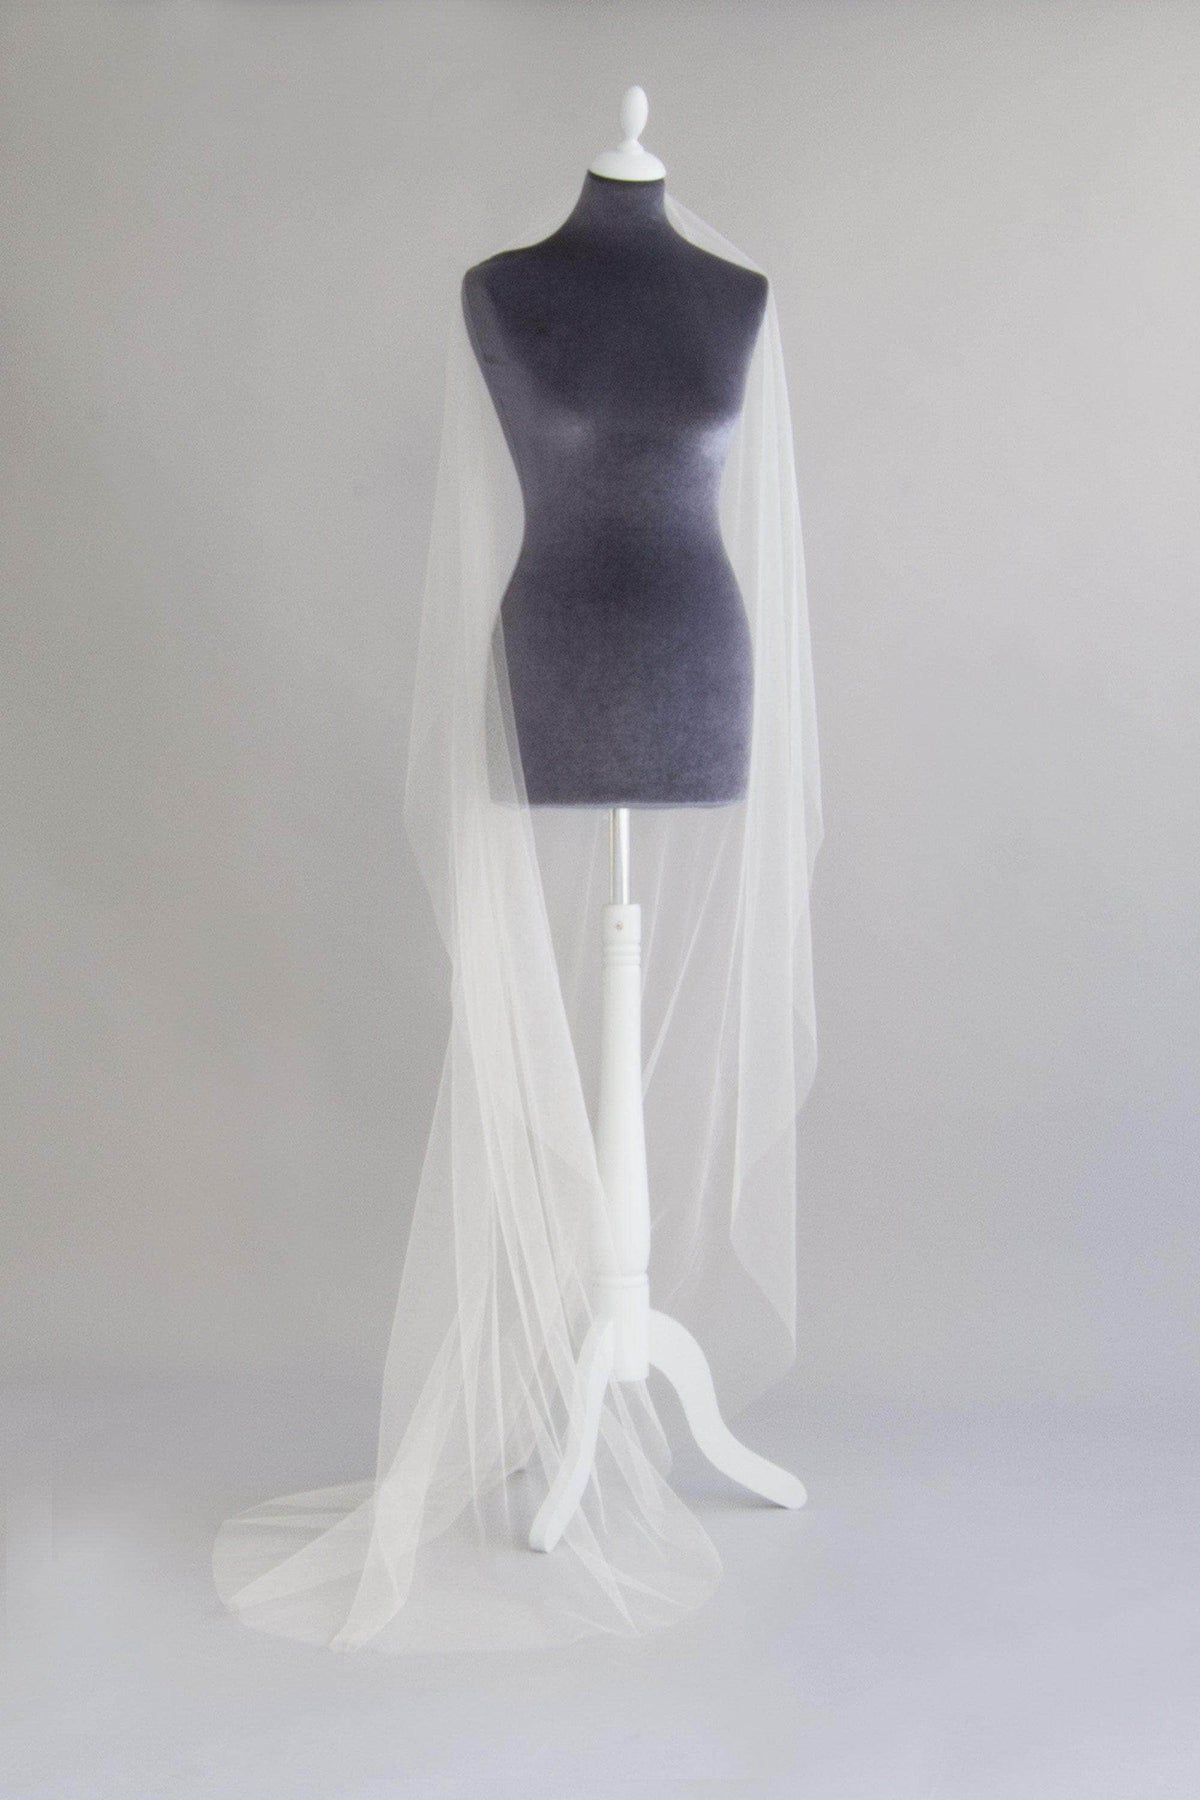 Wedding Veil Crisp silk barely there wedding veil - 'Margot'